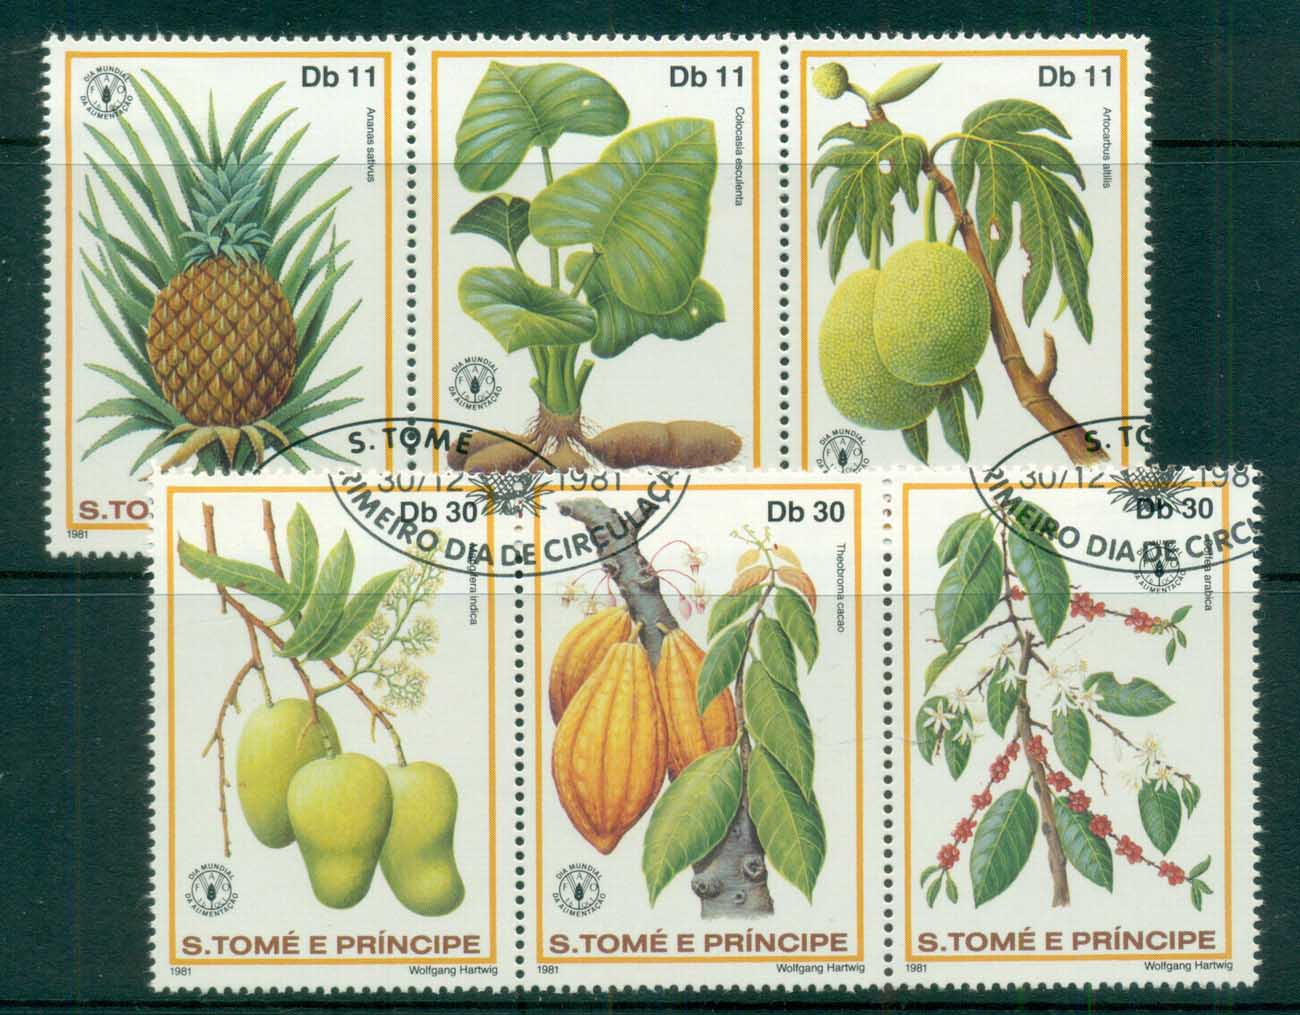 Sao Tome et Principe 1981 World Food Day, Plants, Fruit 2xstr3 CTO